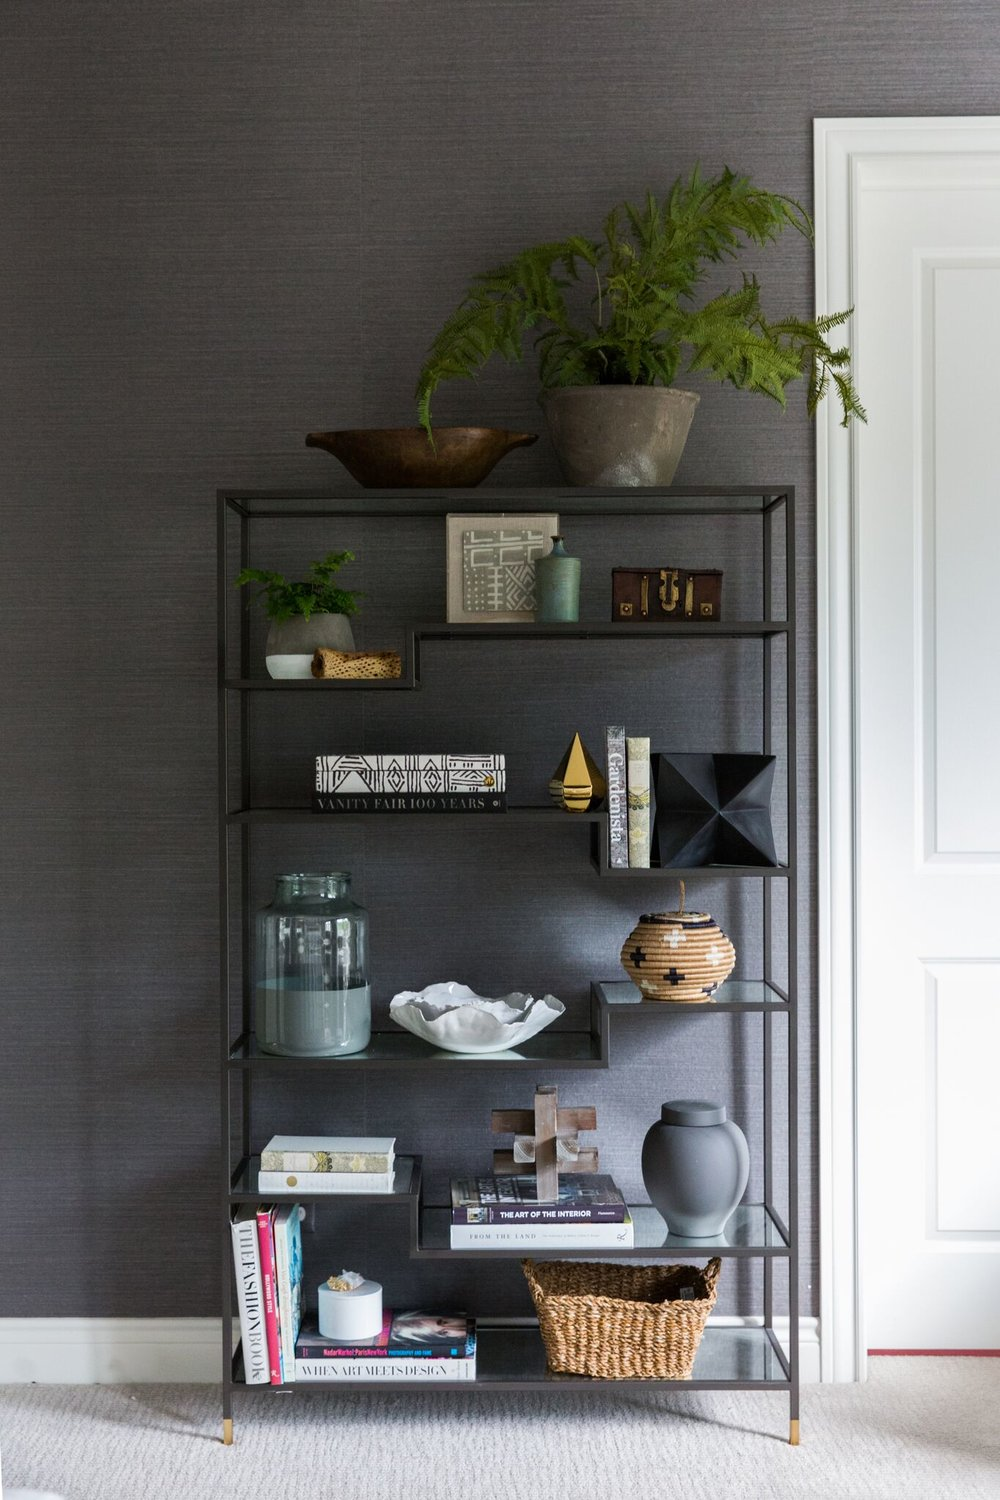 8Eclectic+Bookcase+with+Collected+Display+Pieces+and+Greenery.jpg